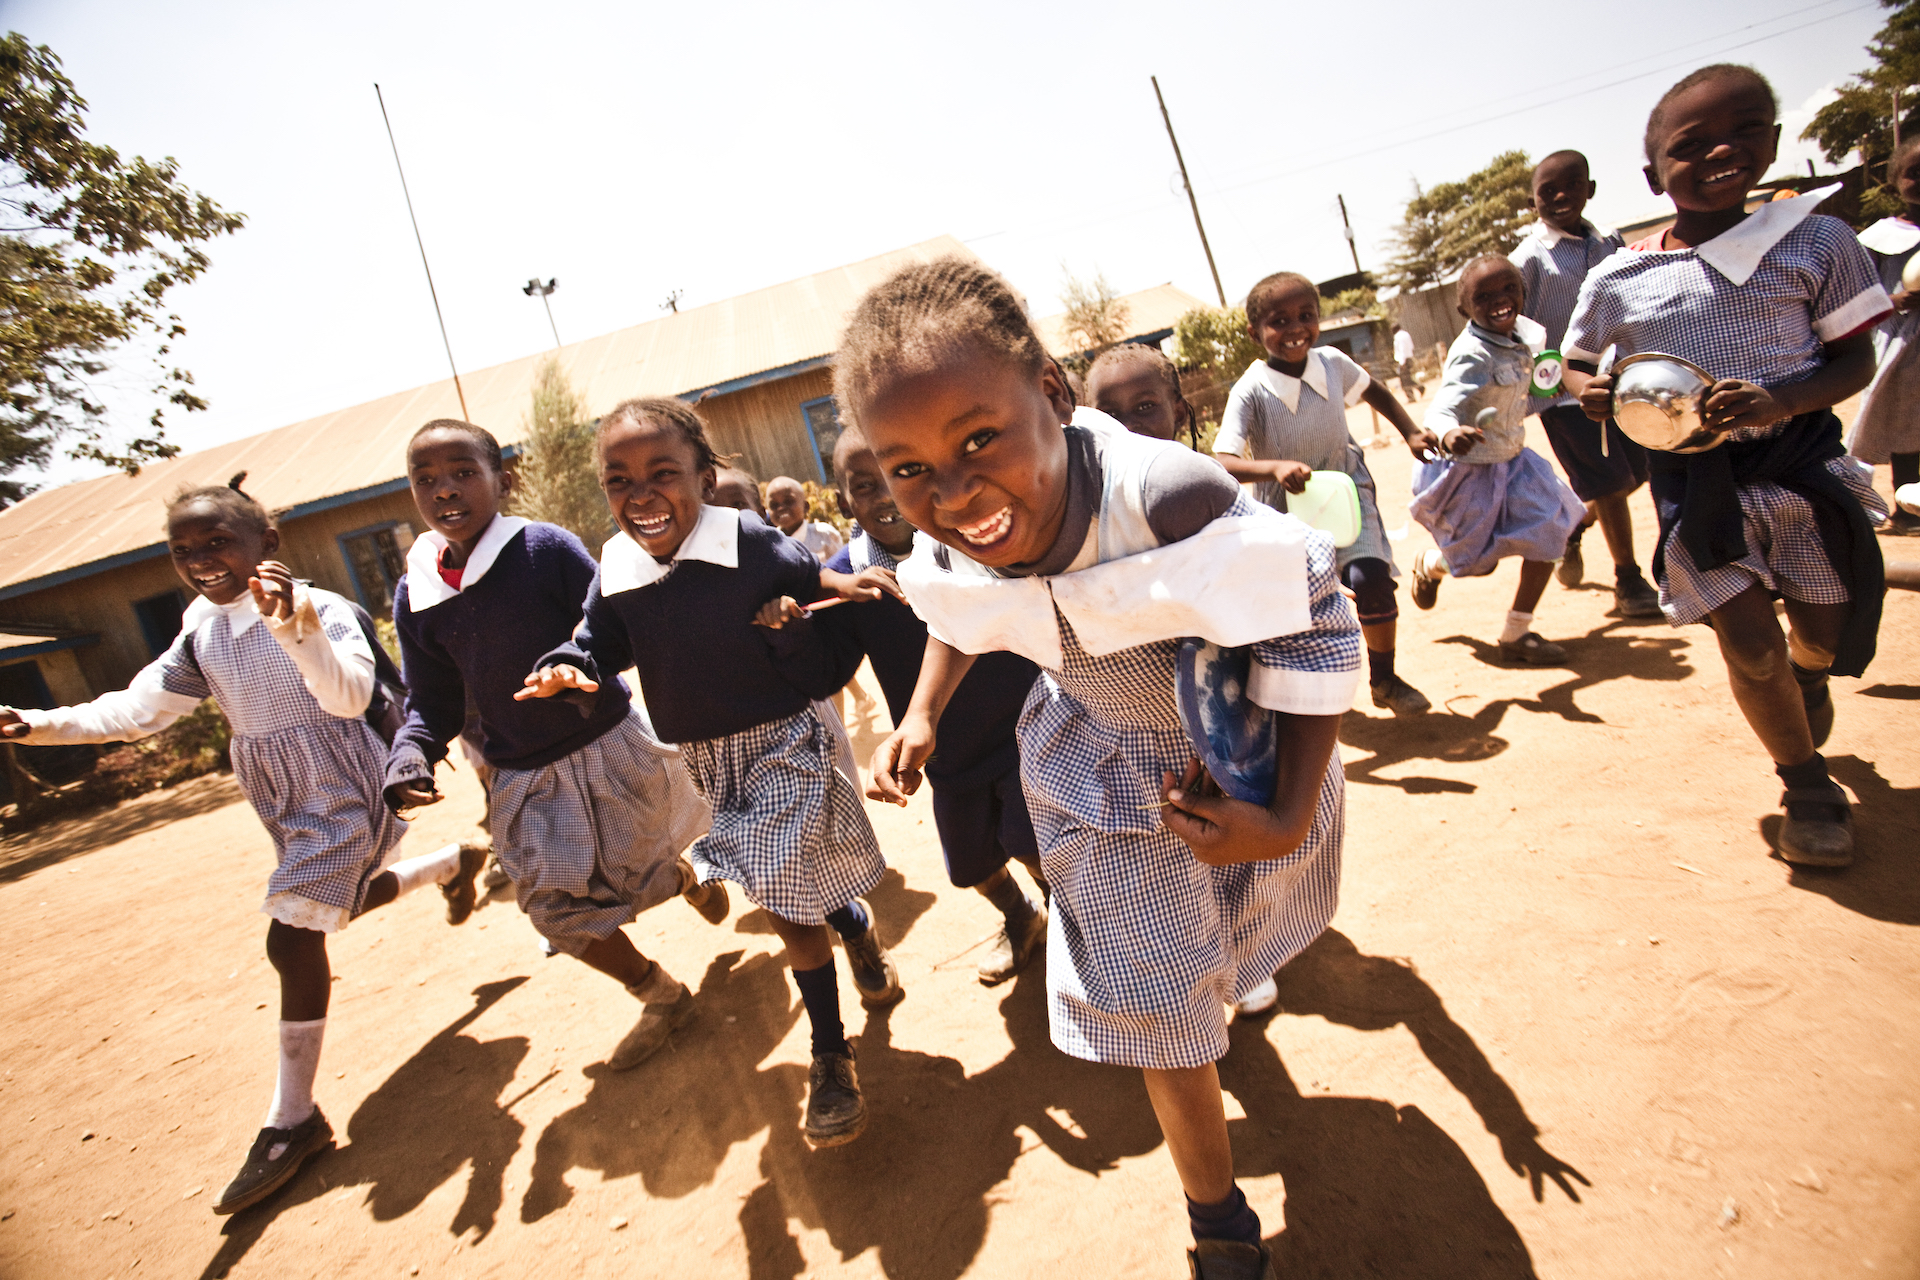 Children smiling and running in a playground in Kenya.